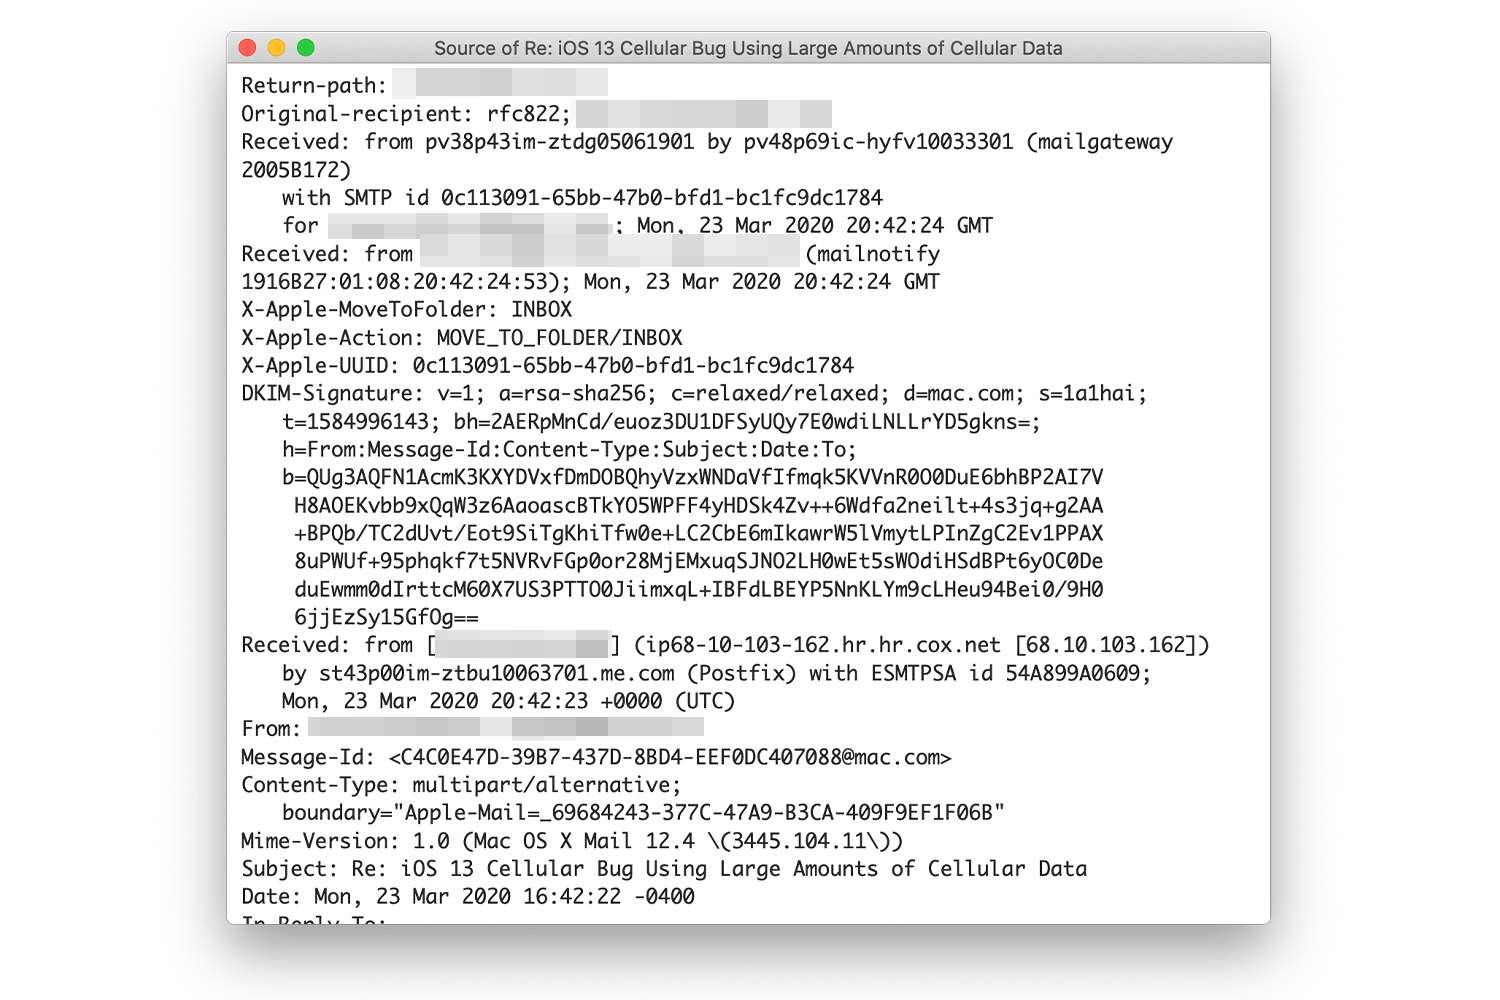 Unformatted headers in Mac Mail email